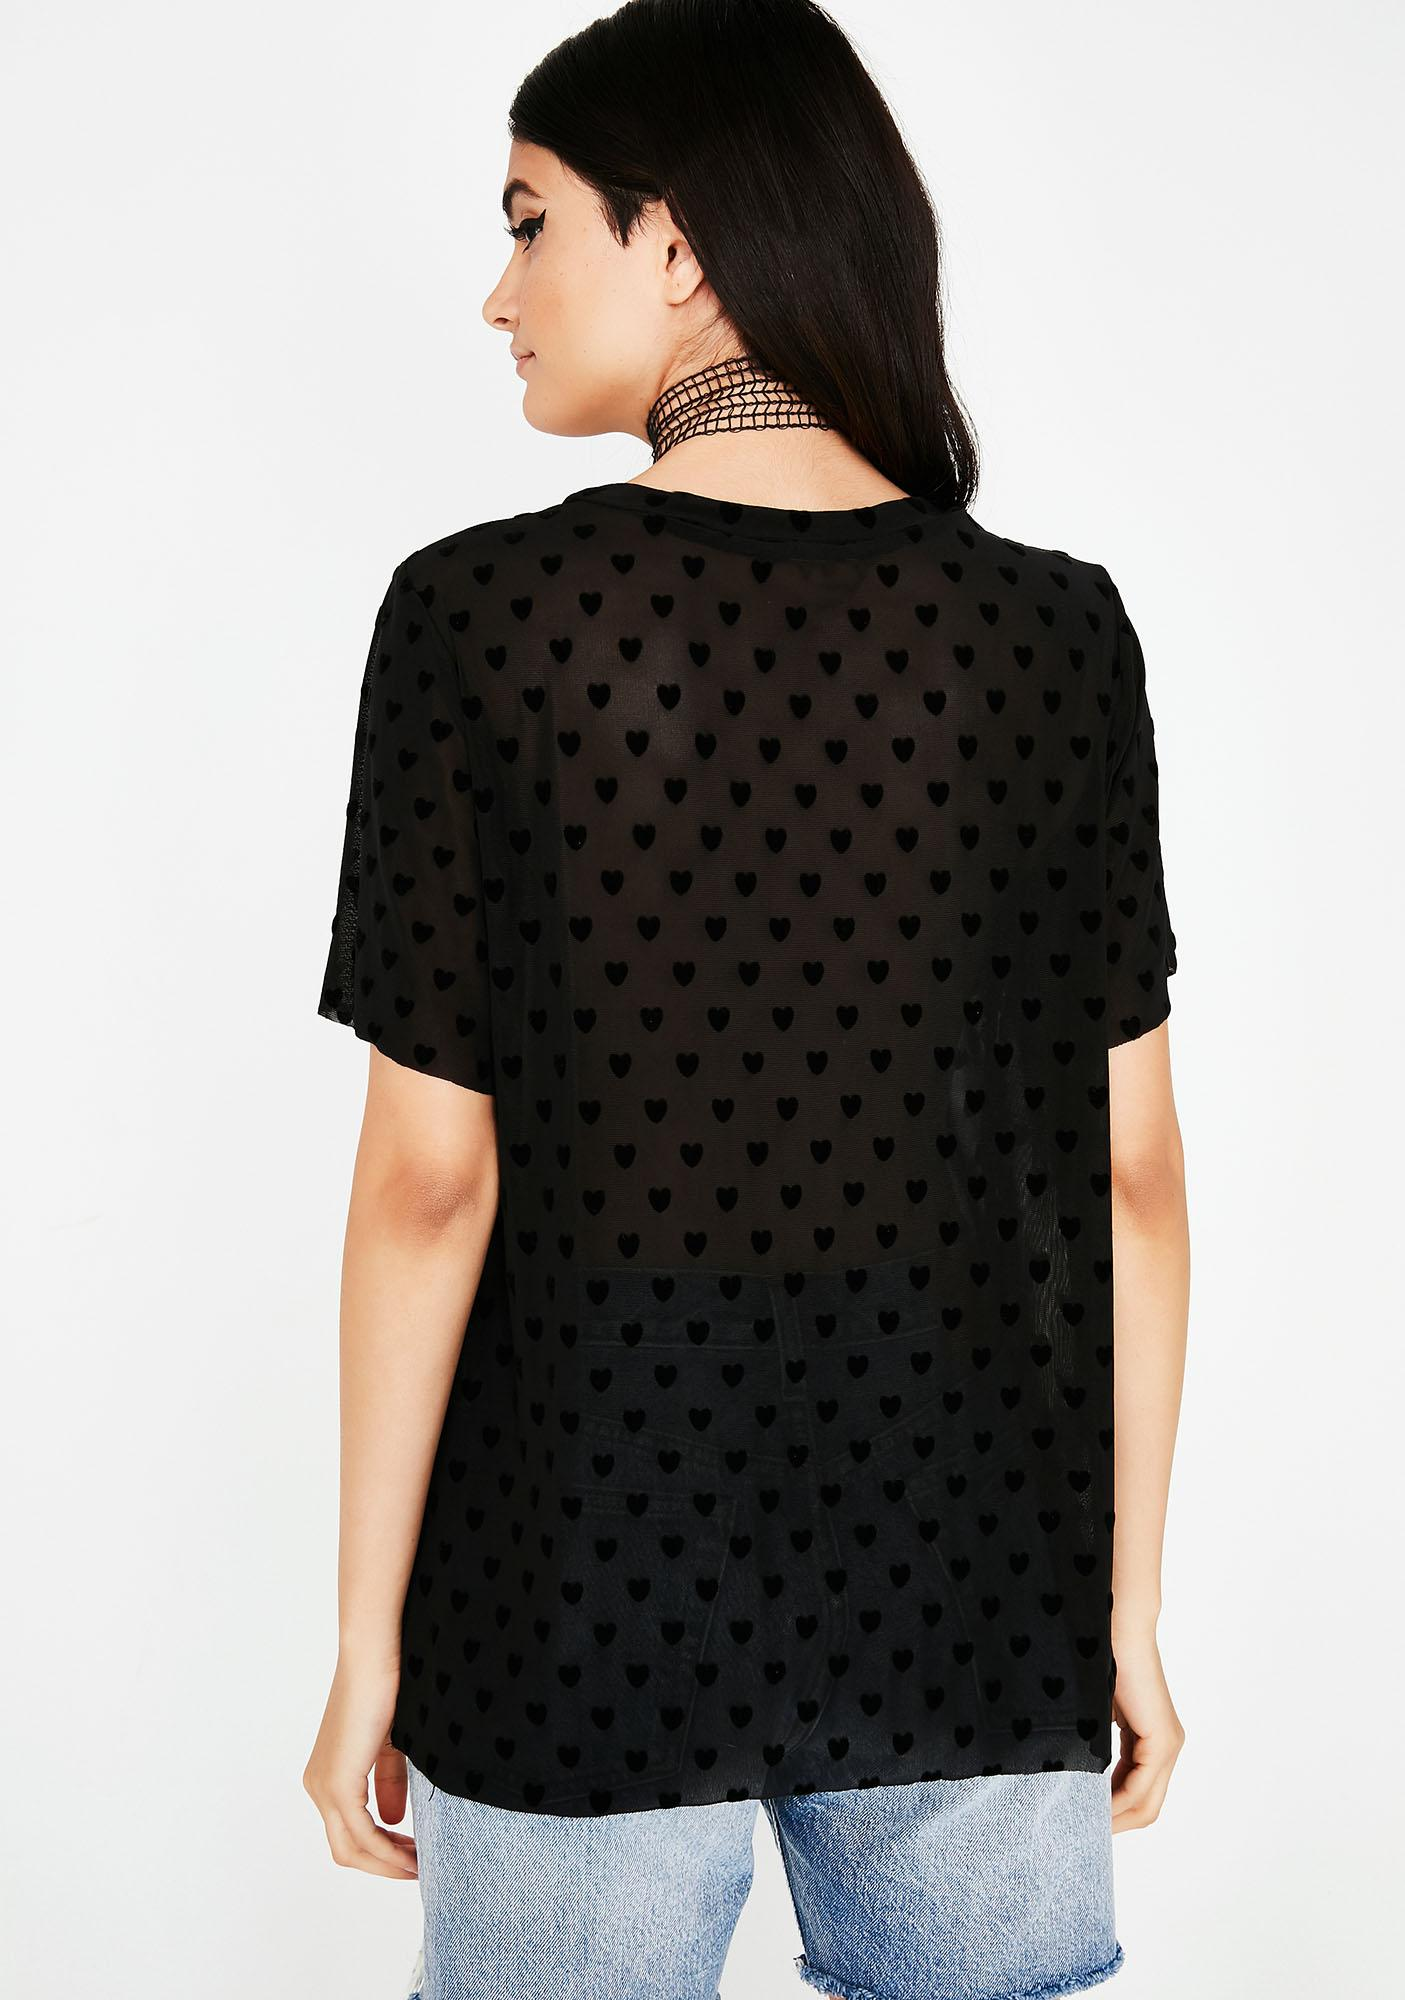 Black Heart BB Sheer Tee